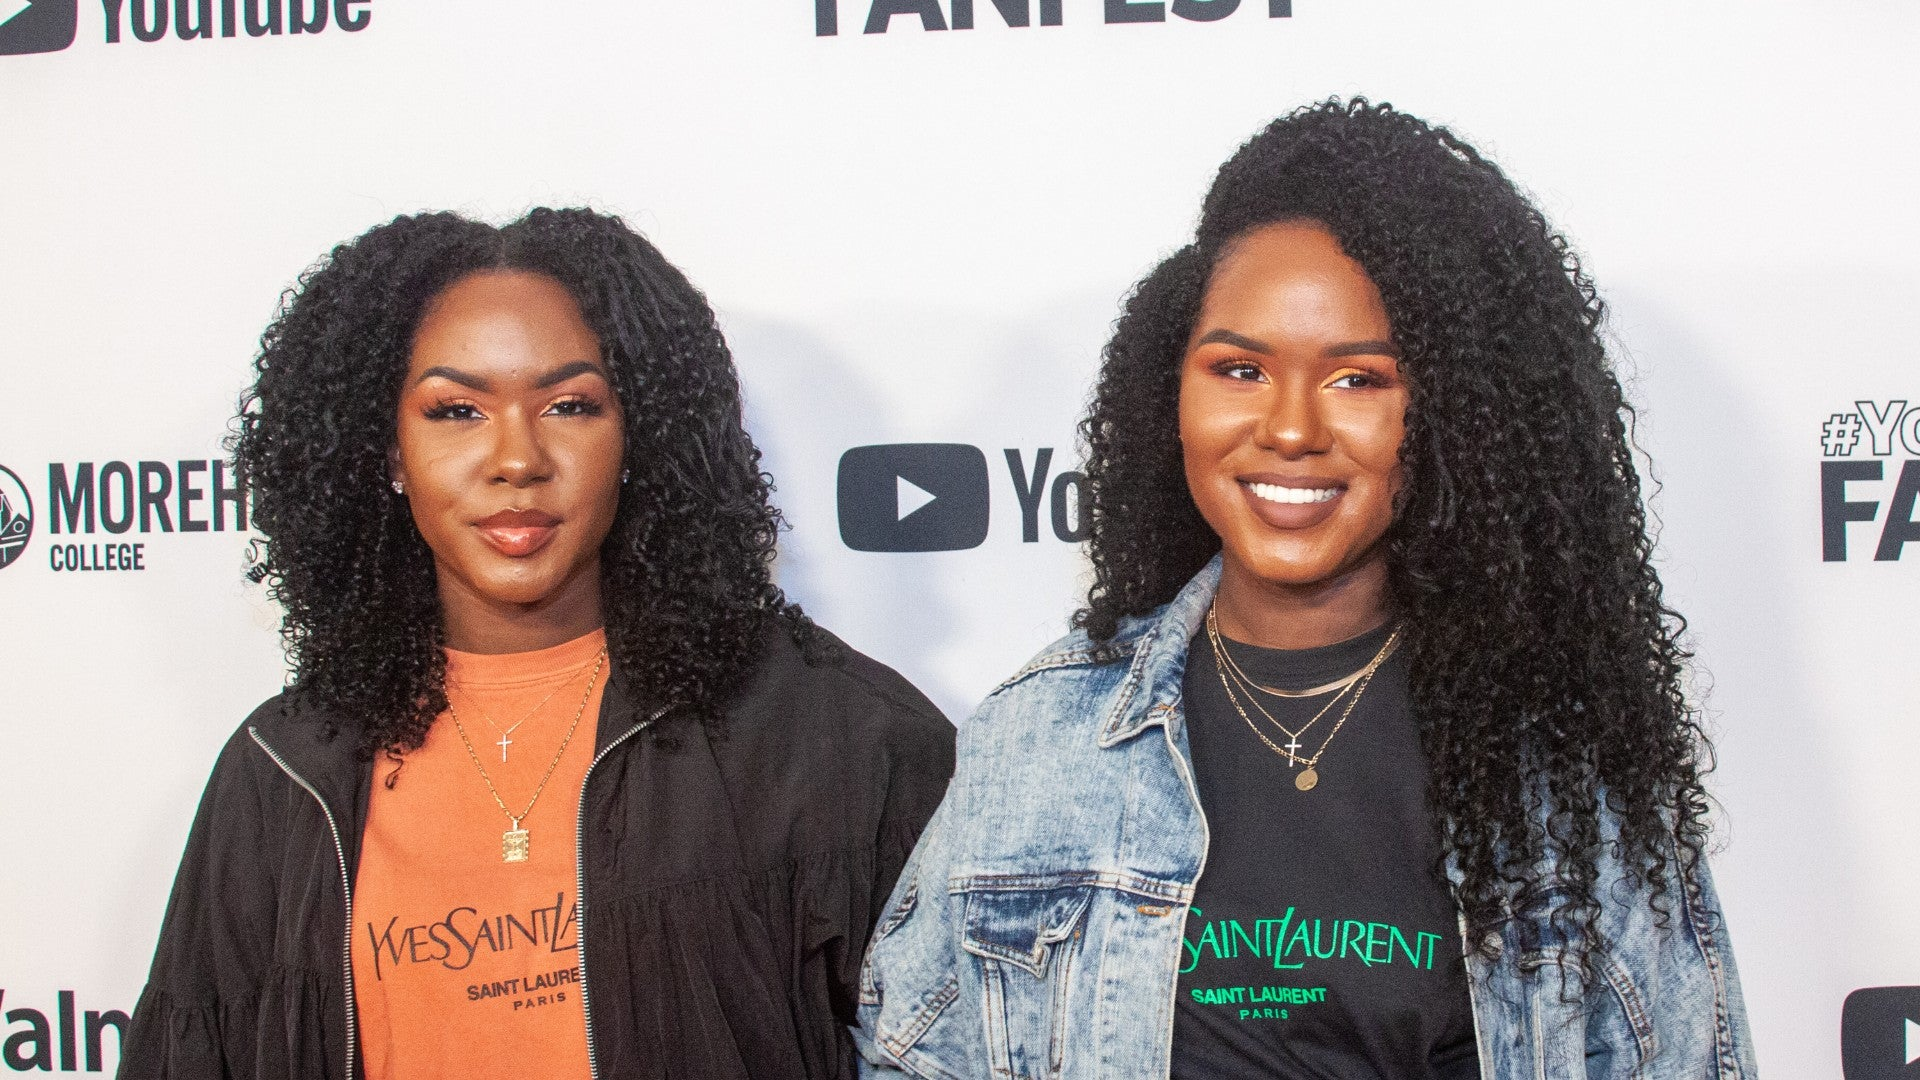 Beauty Moments From #YouTubeBlack FanFest